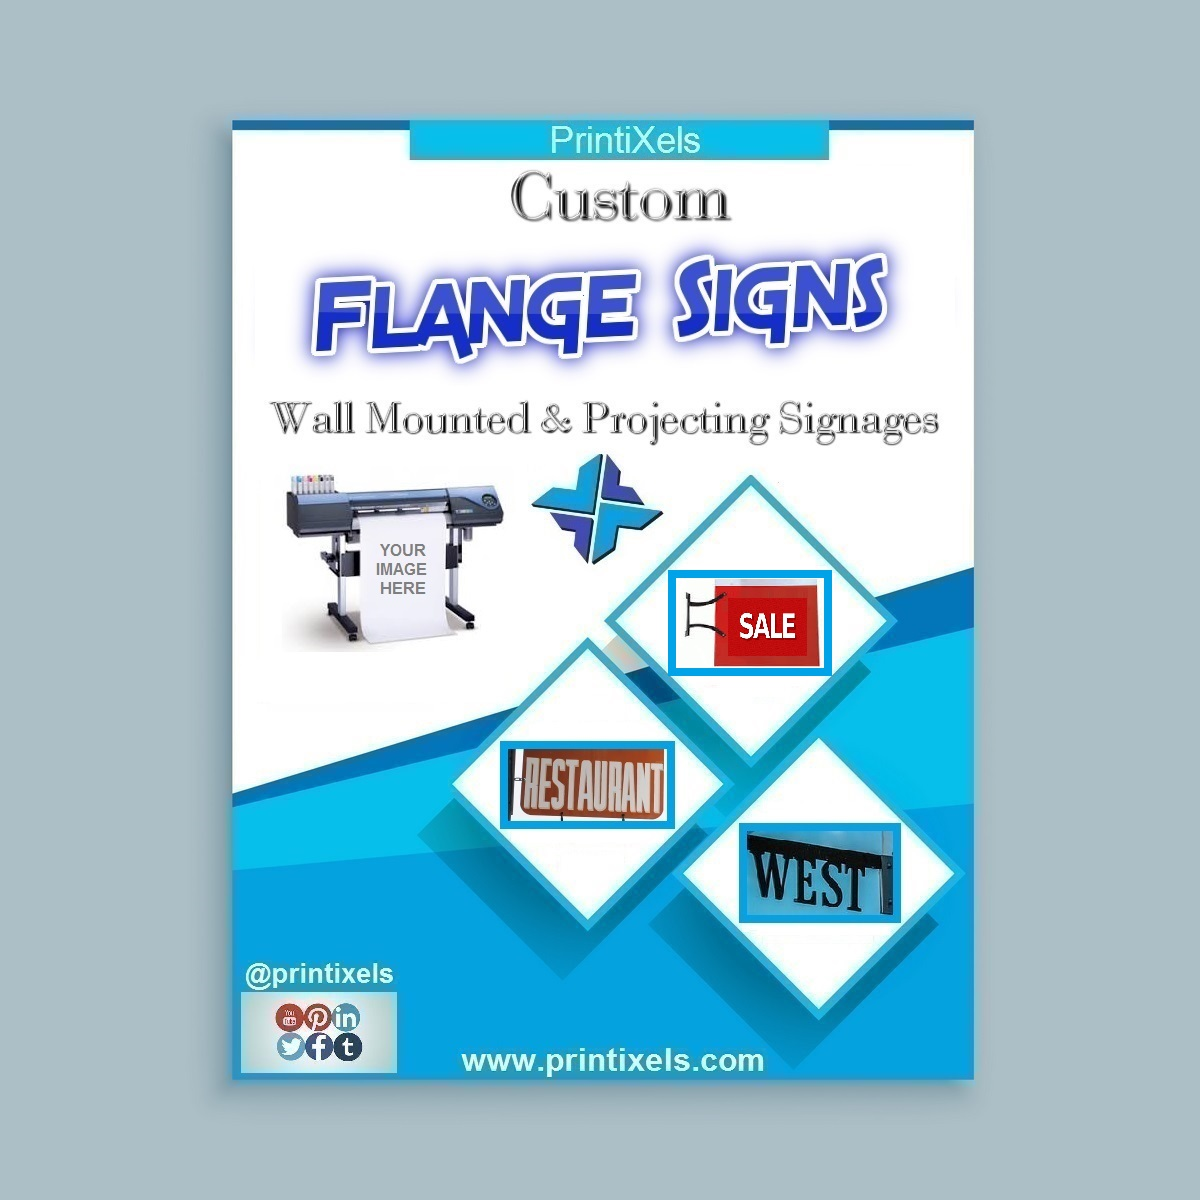 Flange Signs, Wall Mounted & Projecting Signages